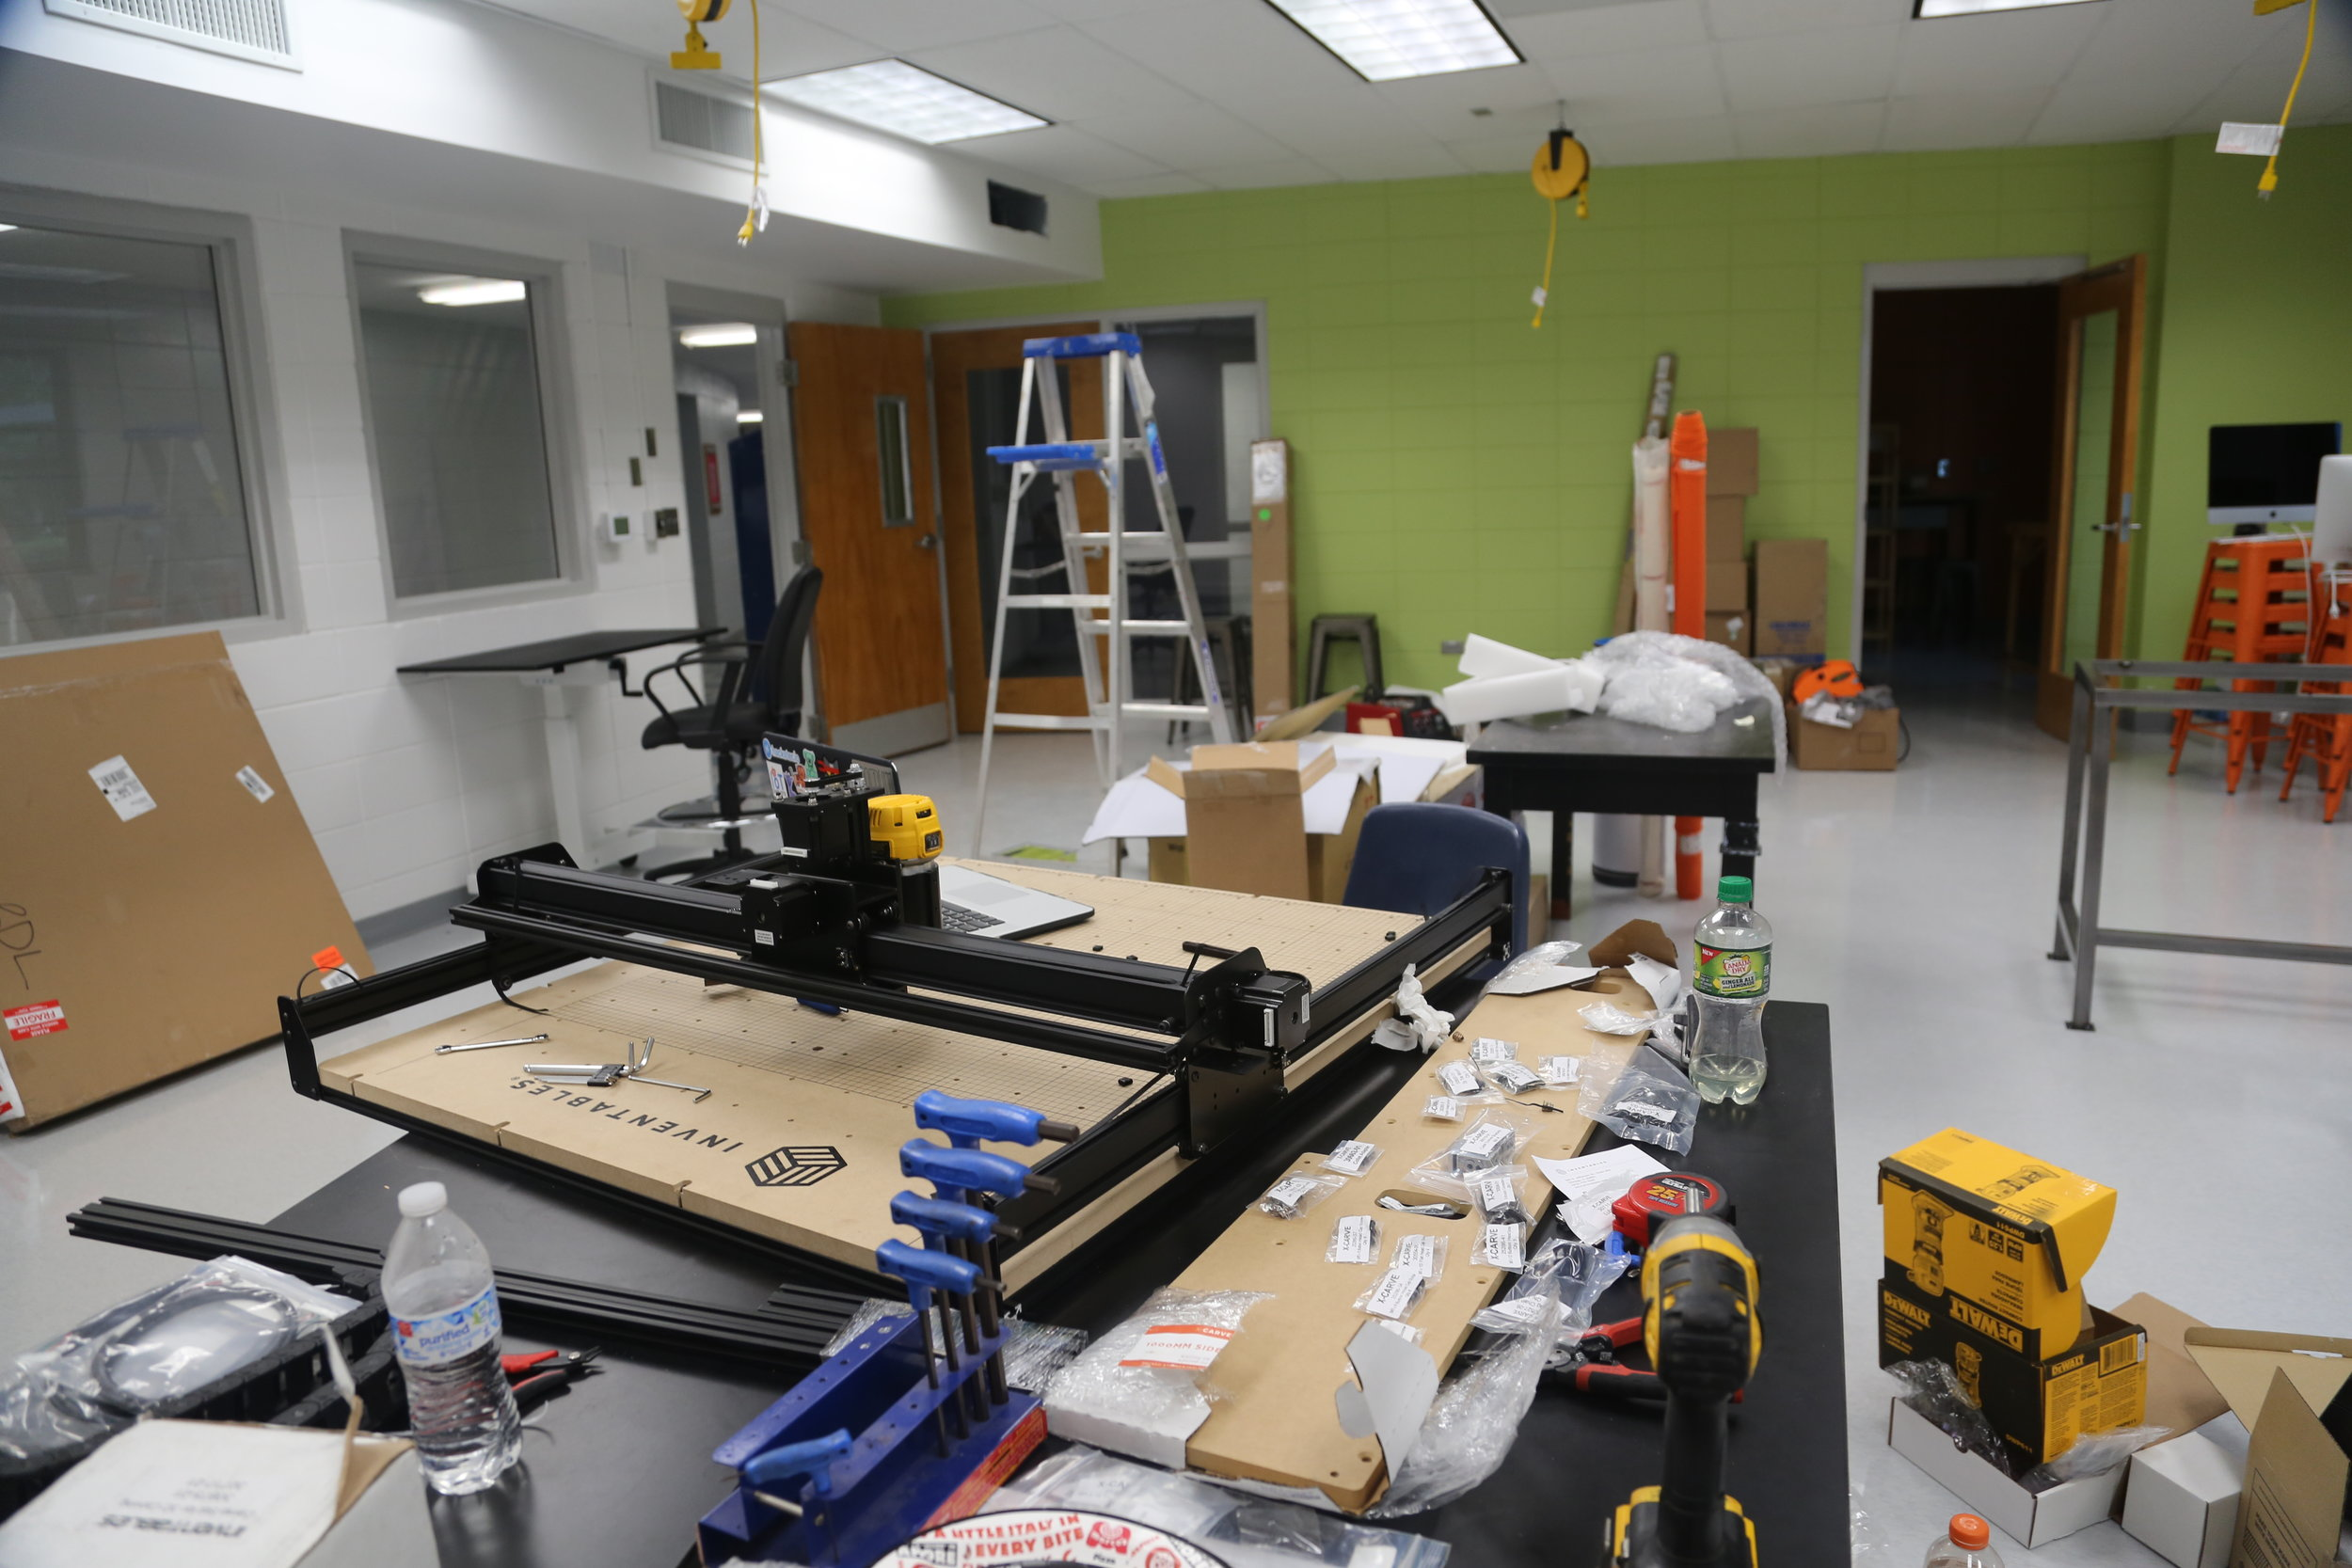 X-Carve and maker space assembly in-progress